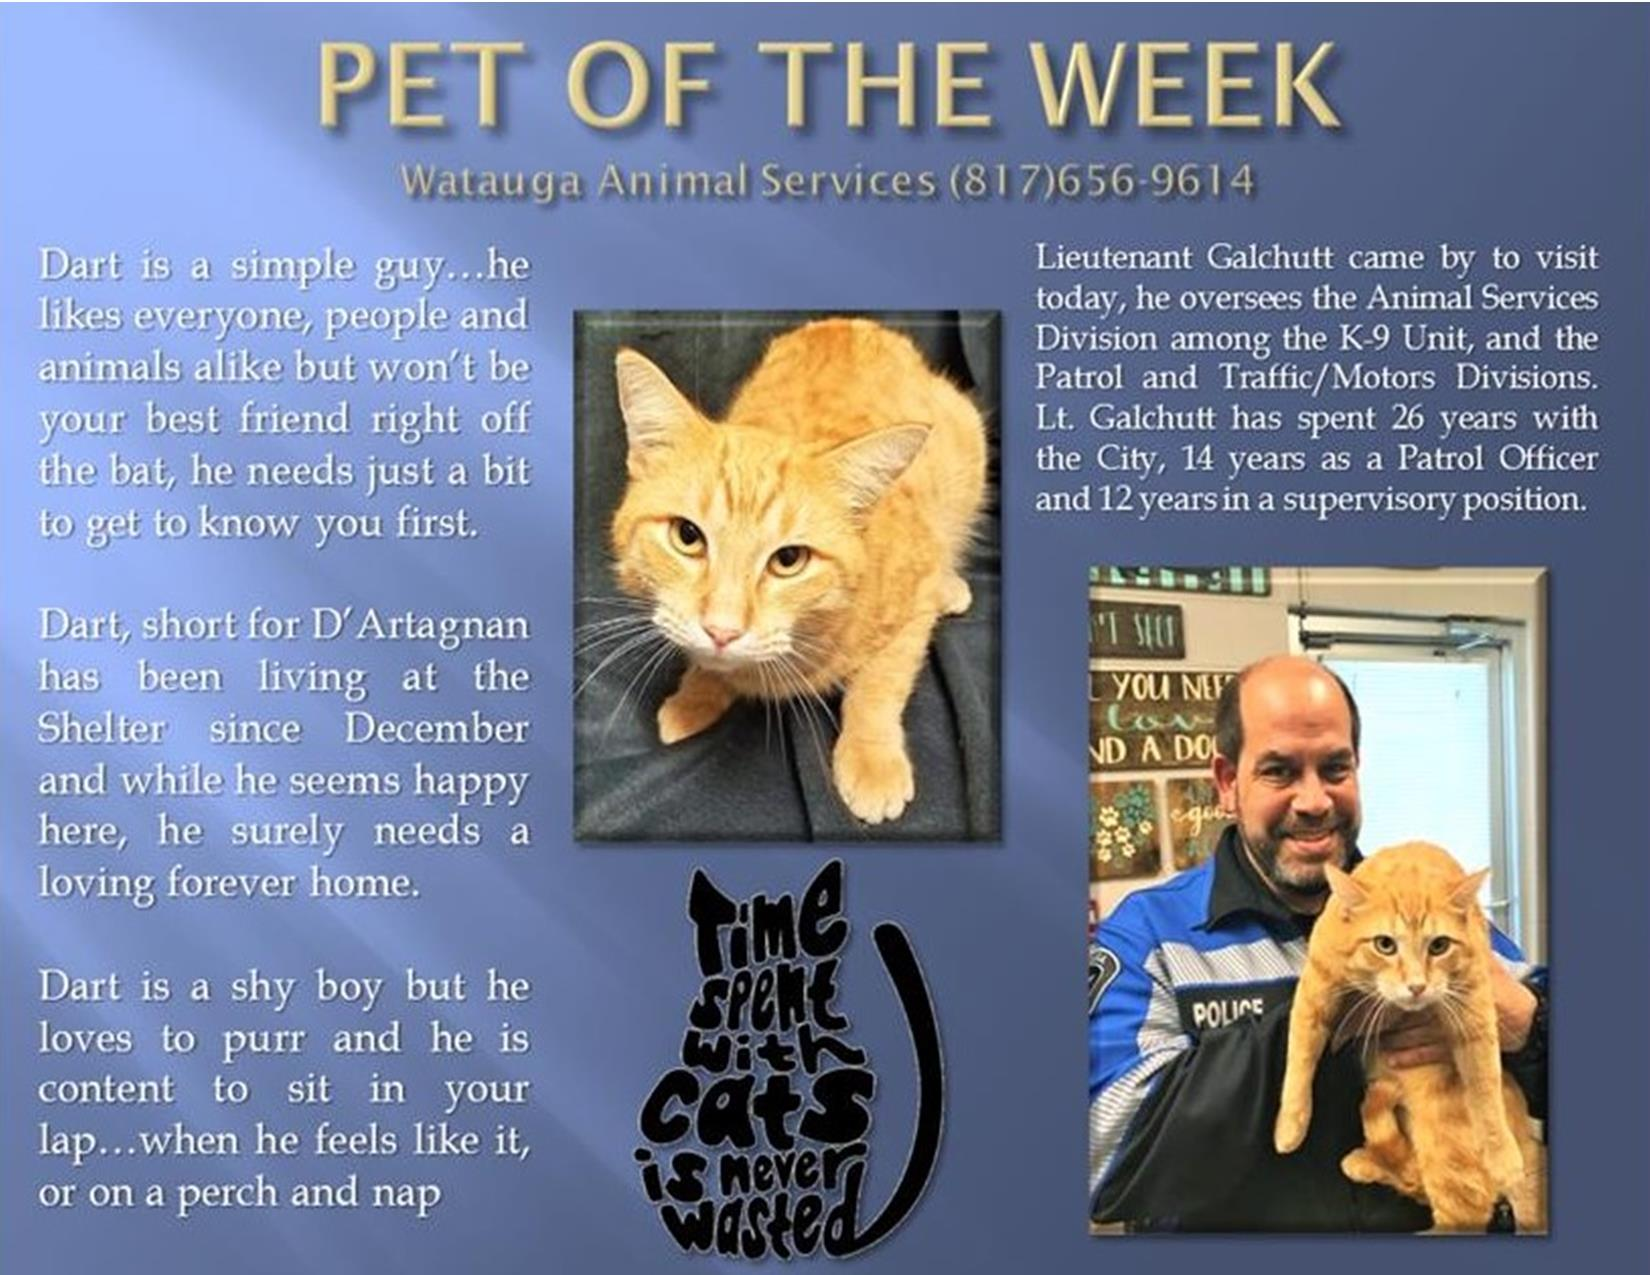 Pet of the Week - Galchutt and Dart